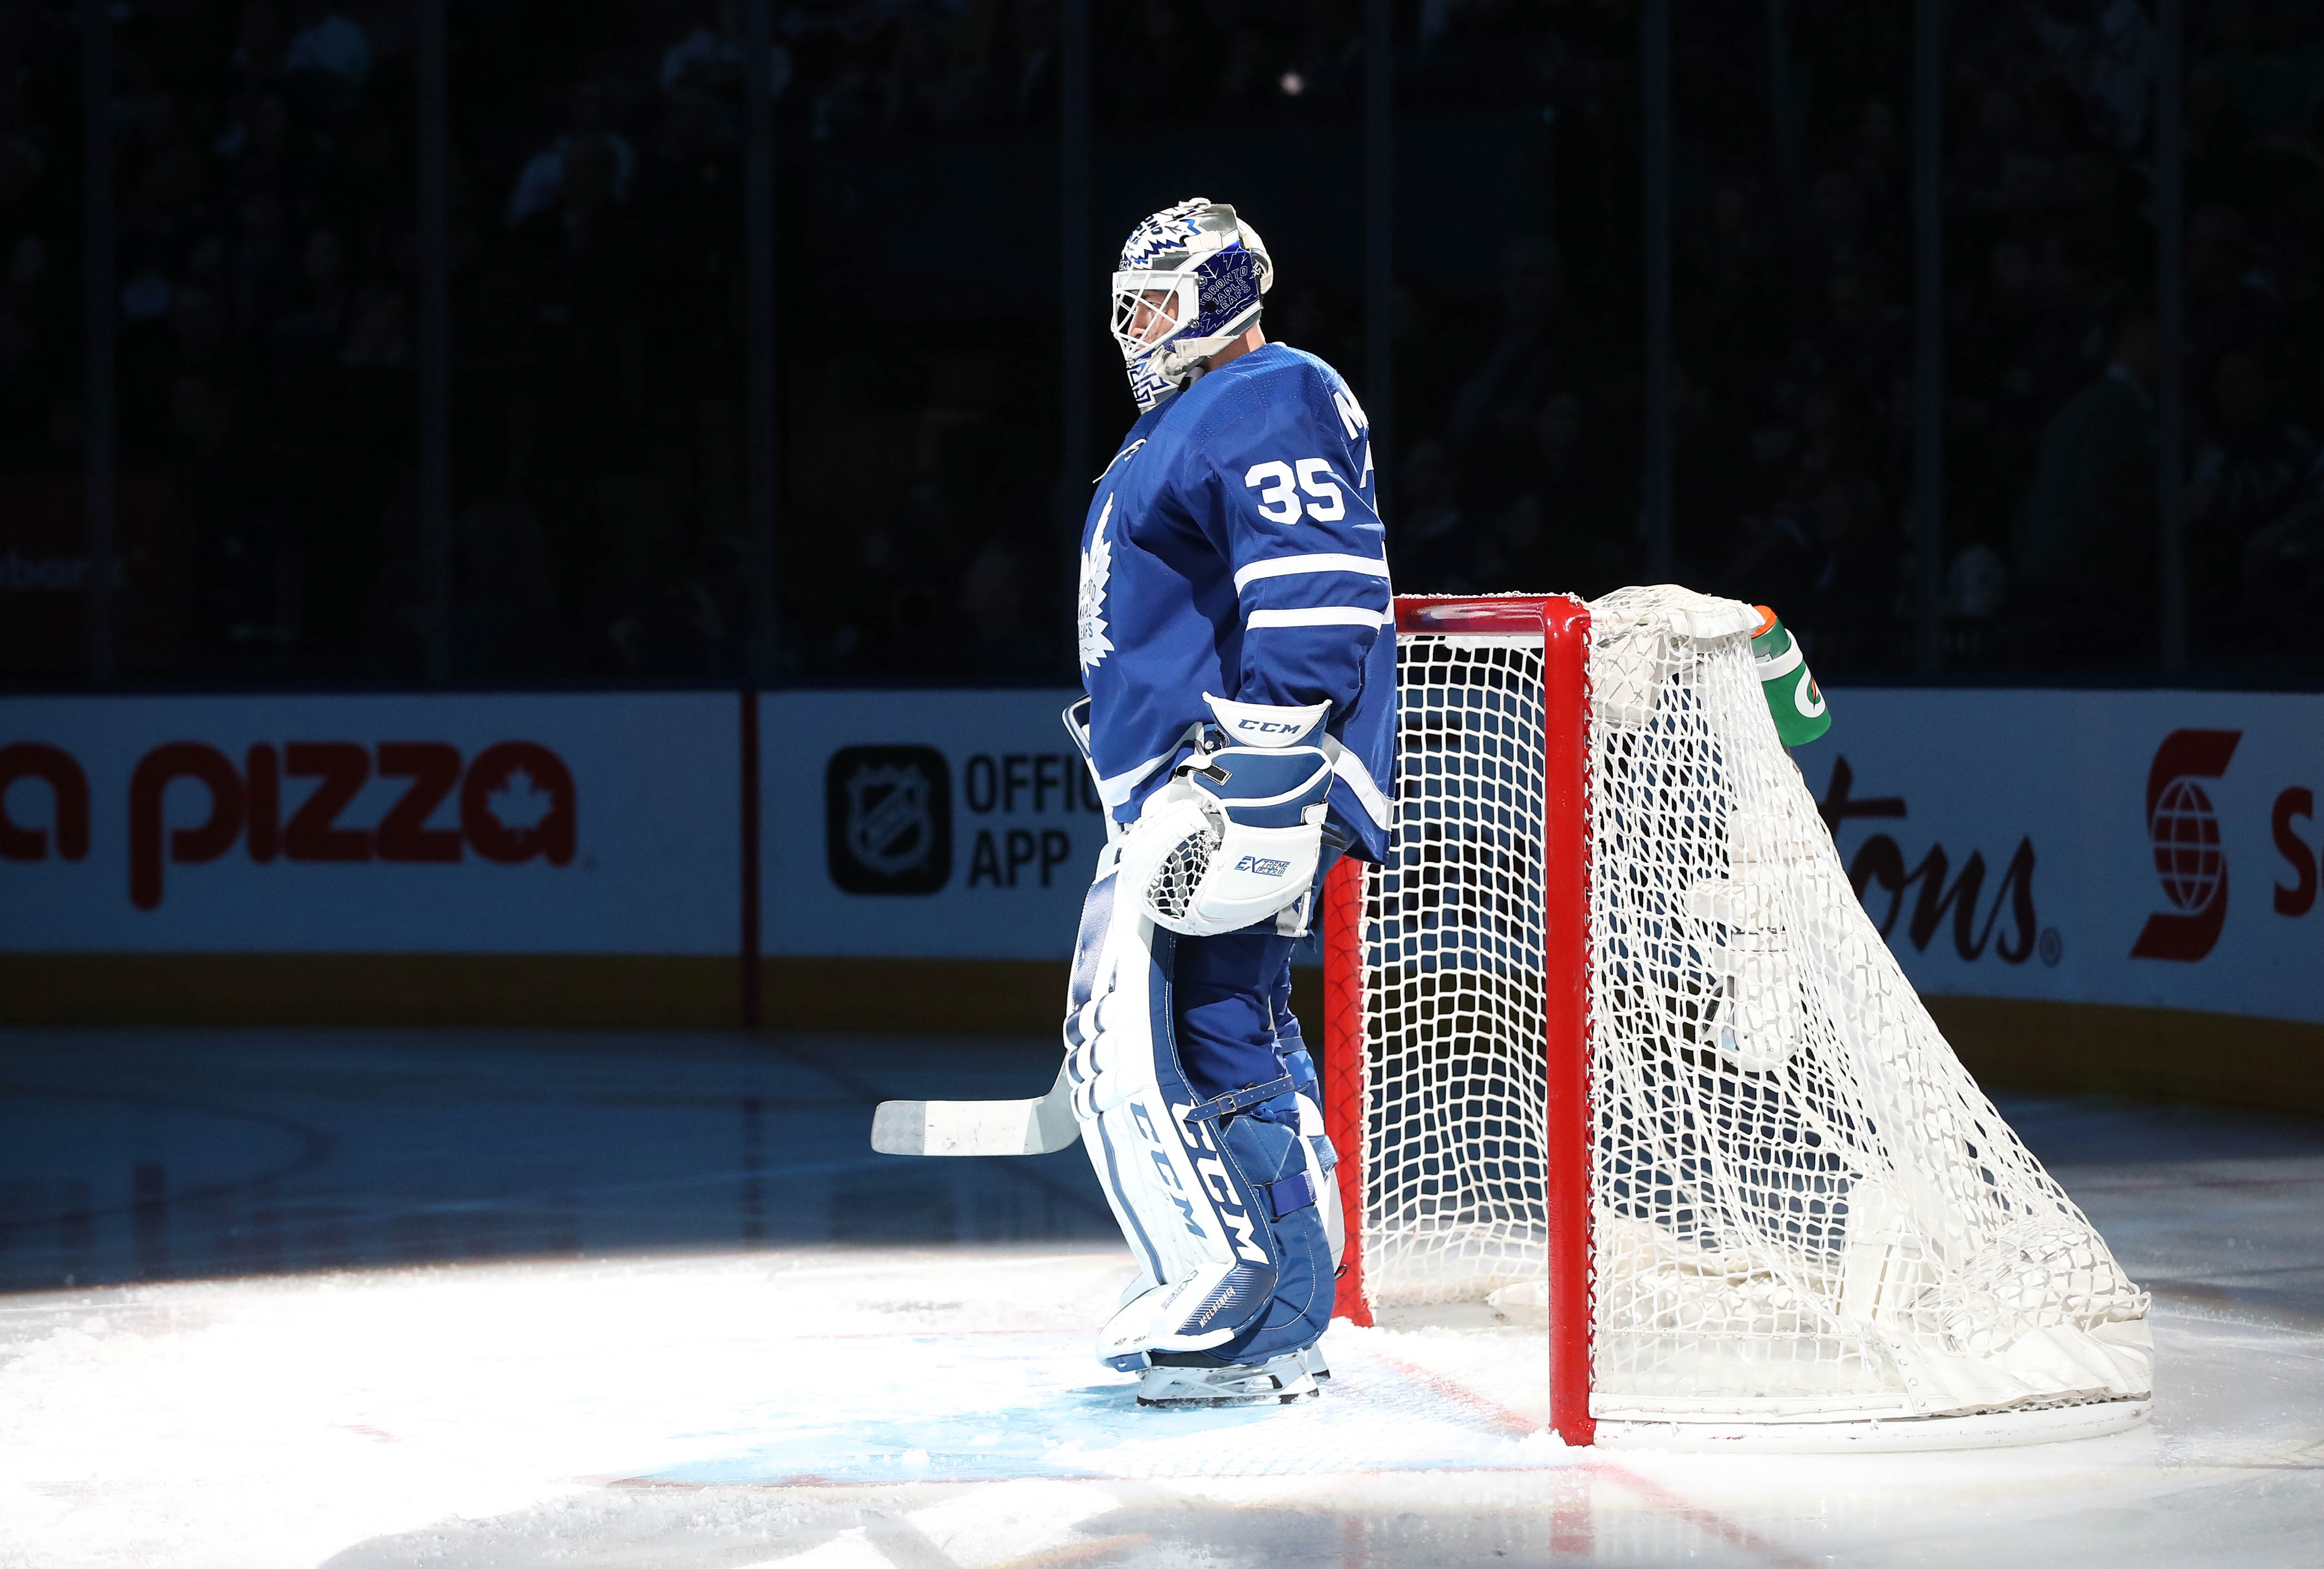 NHL: Montreal Canadiens at Toronto Maple Leafs